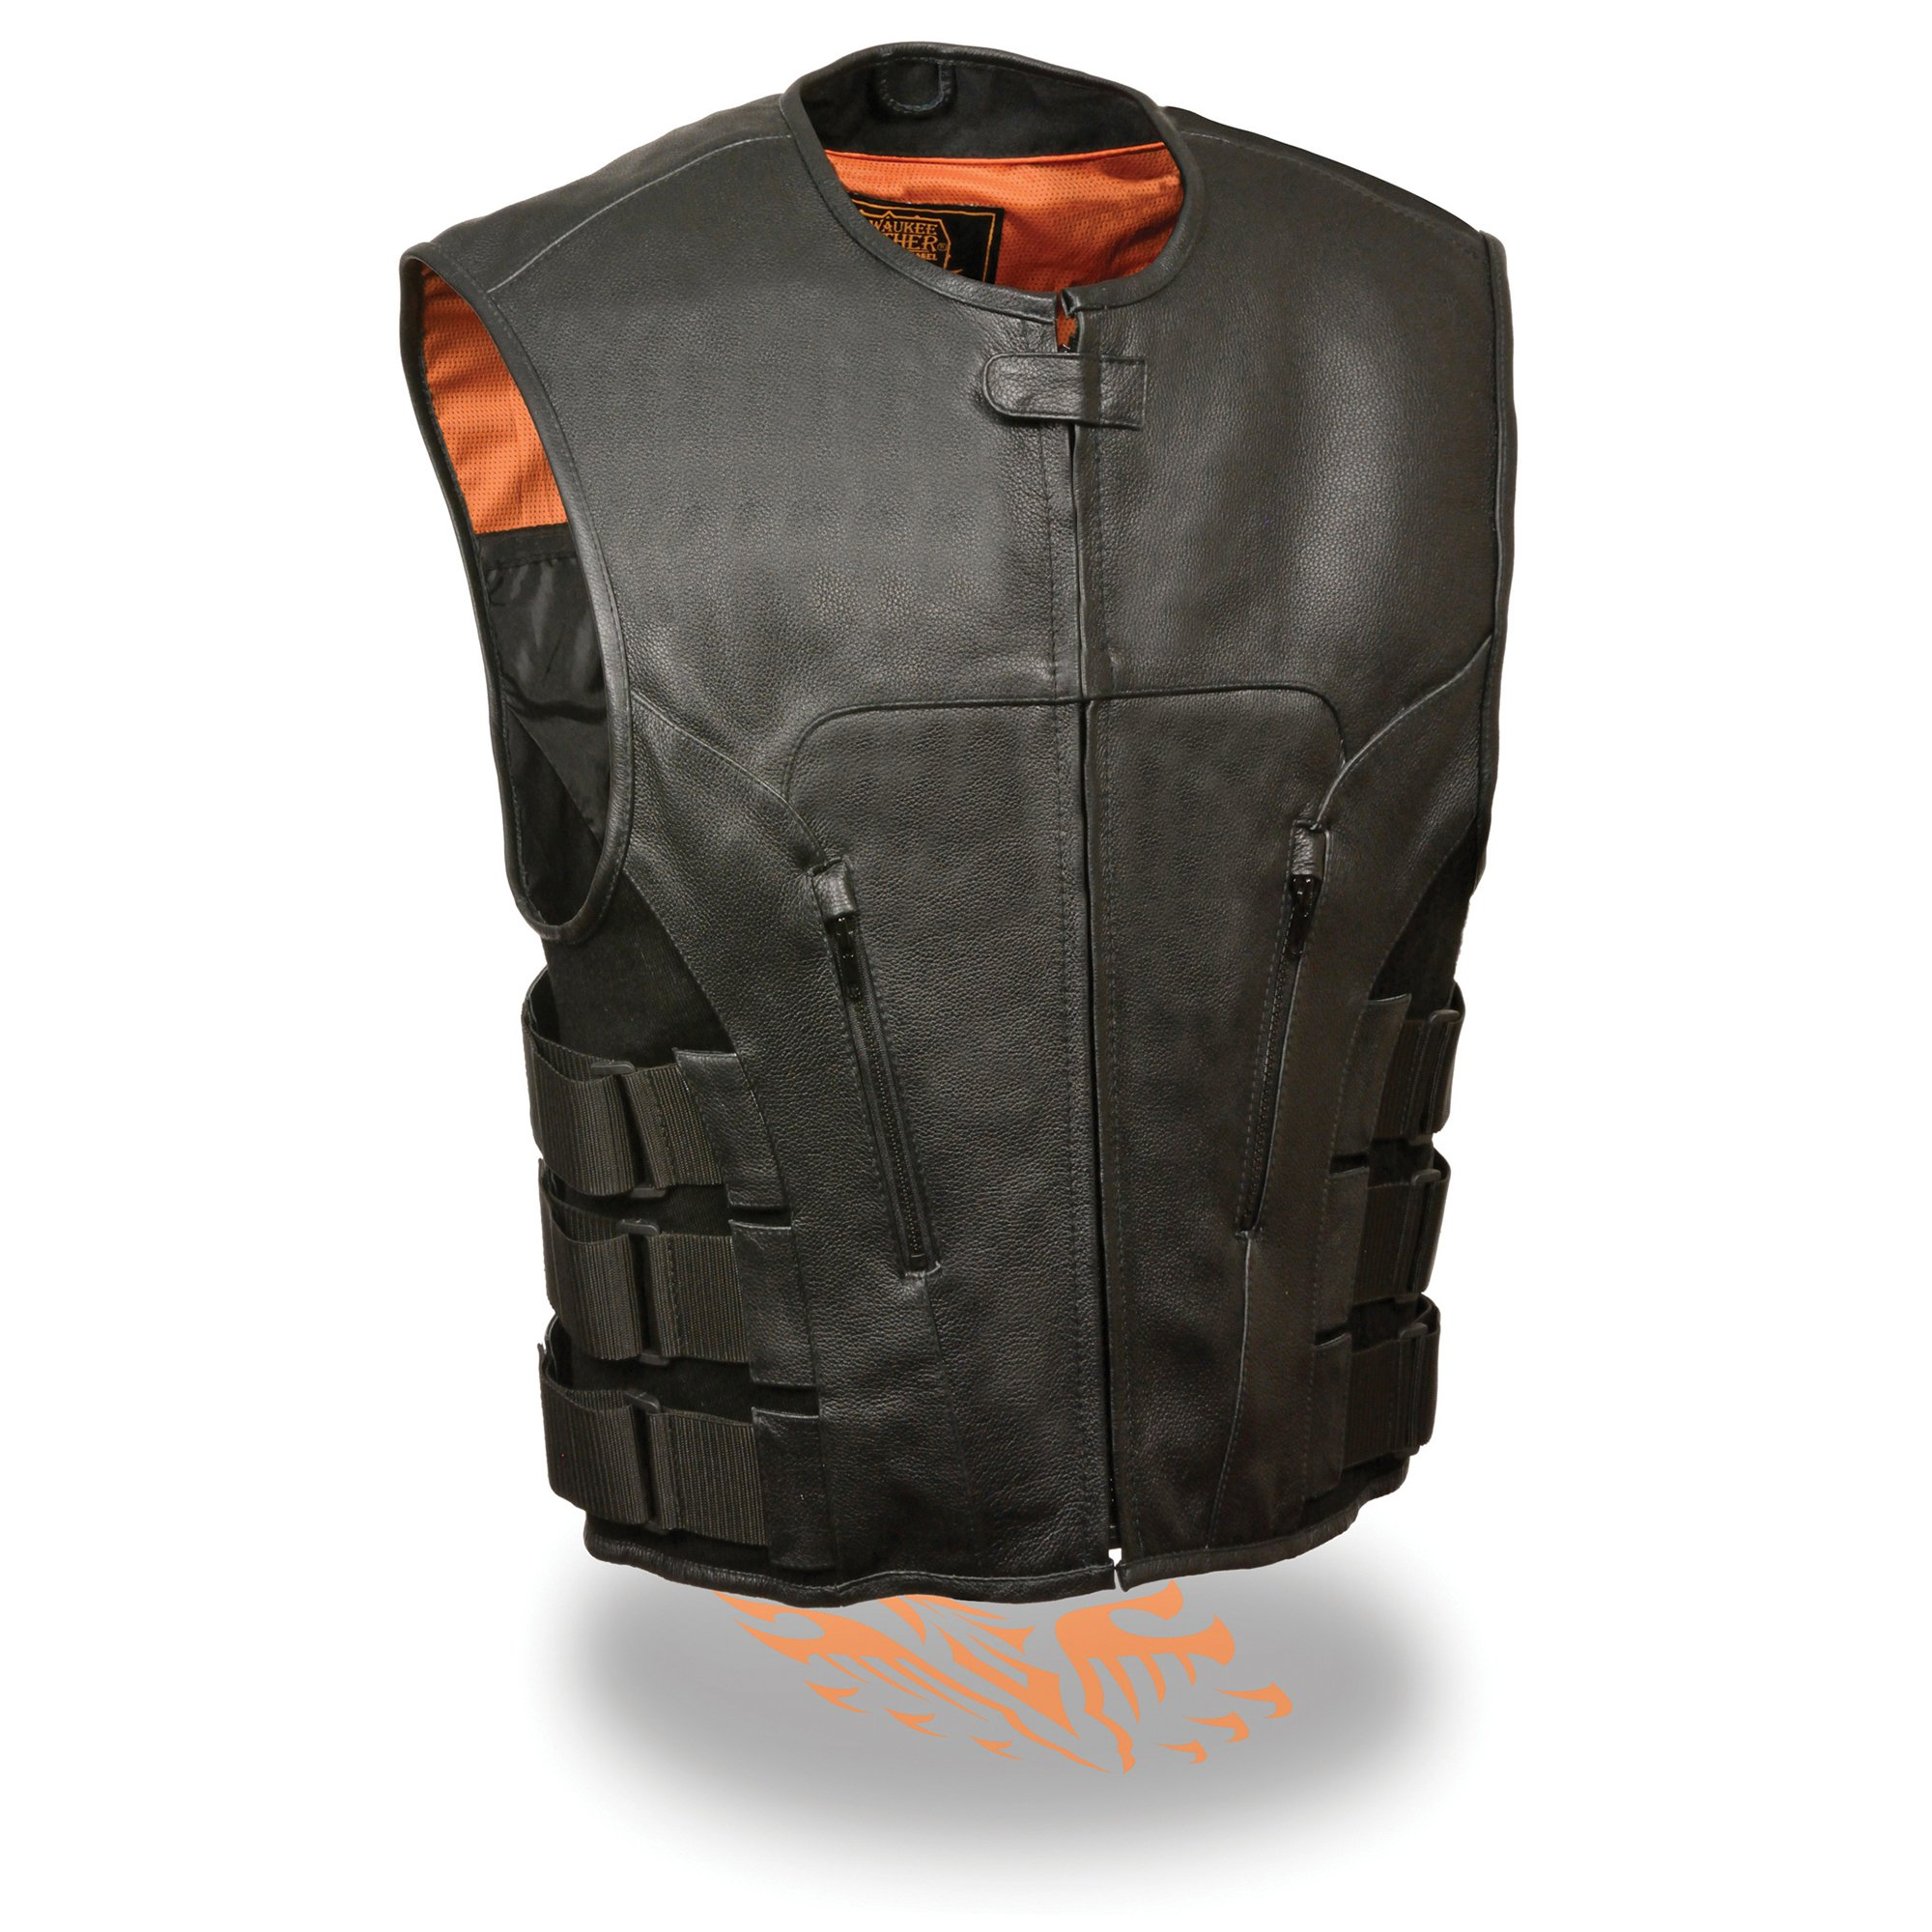 Milwaukee Leather Men's Bullet Proof Look Swat Motorcycle Club Vest w/Single Panel Back & Dual Inside Gun Pockets (Large.) by Milwaukee Leather